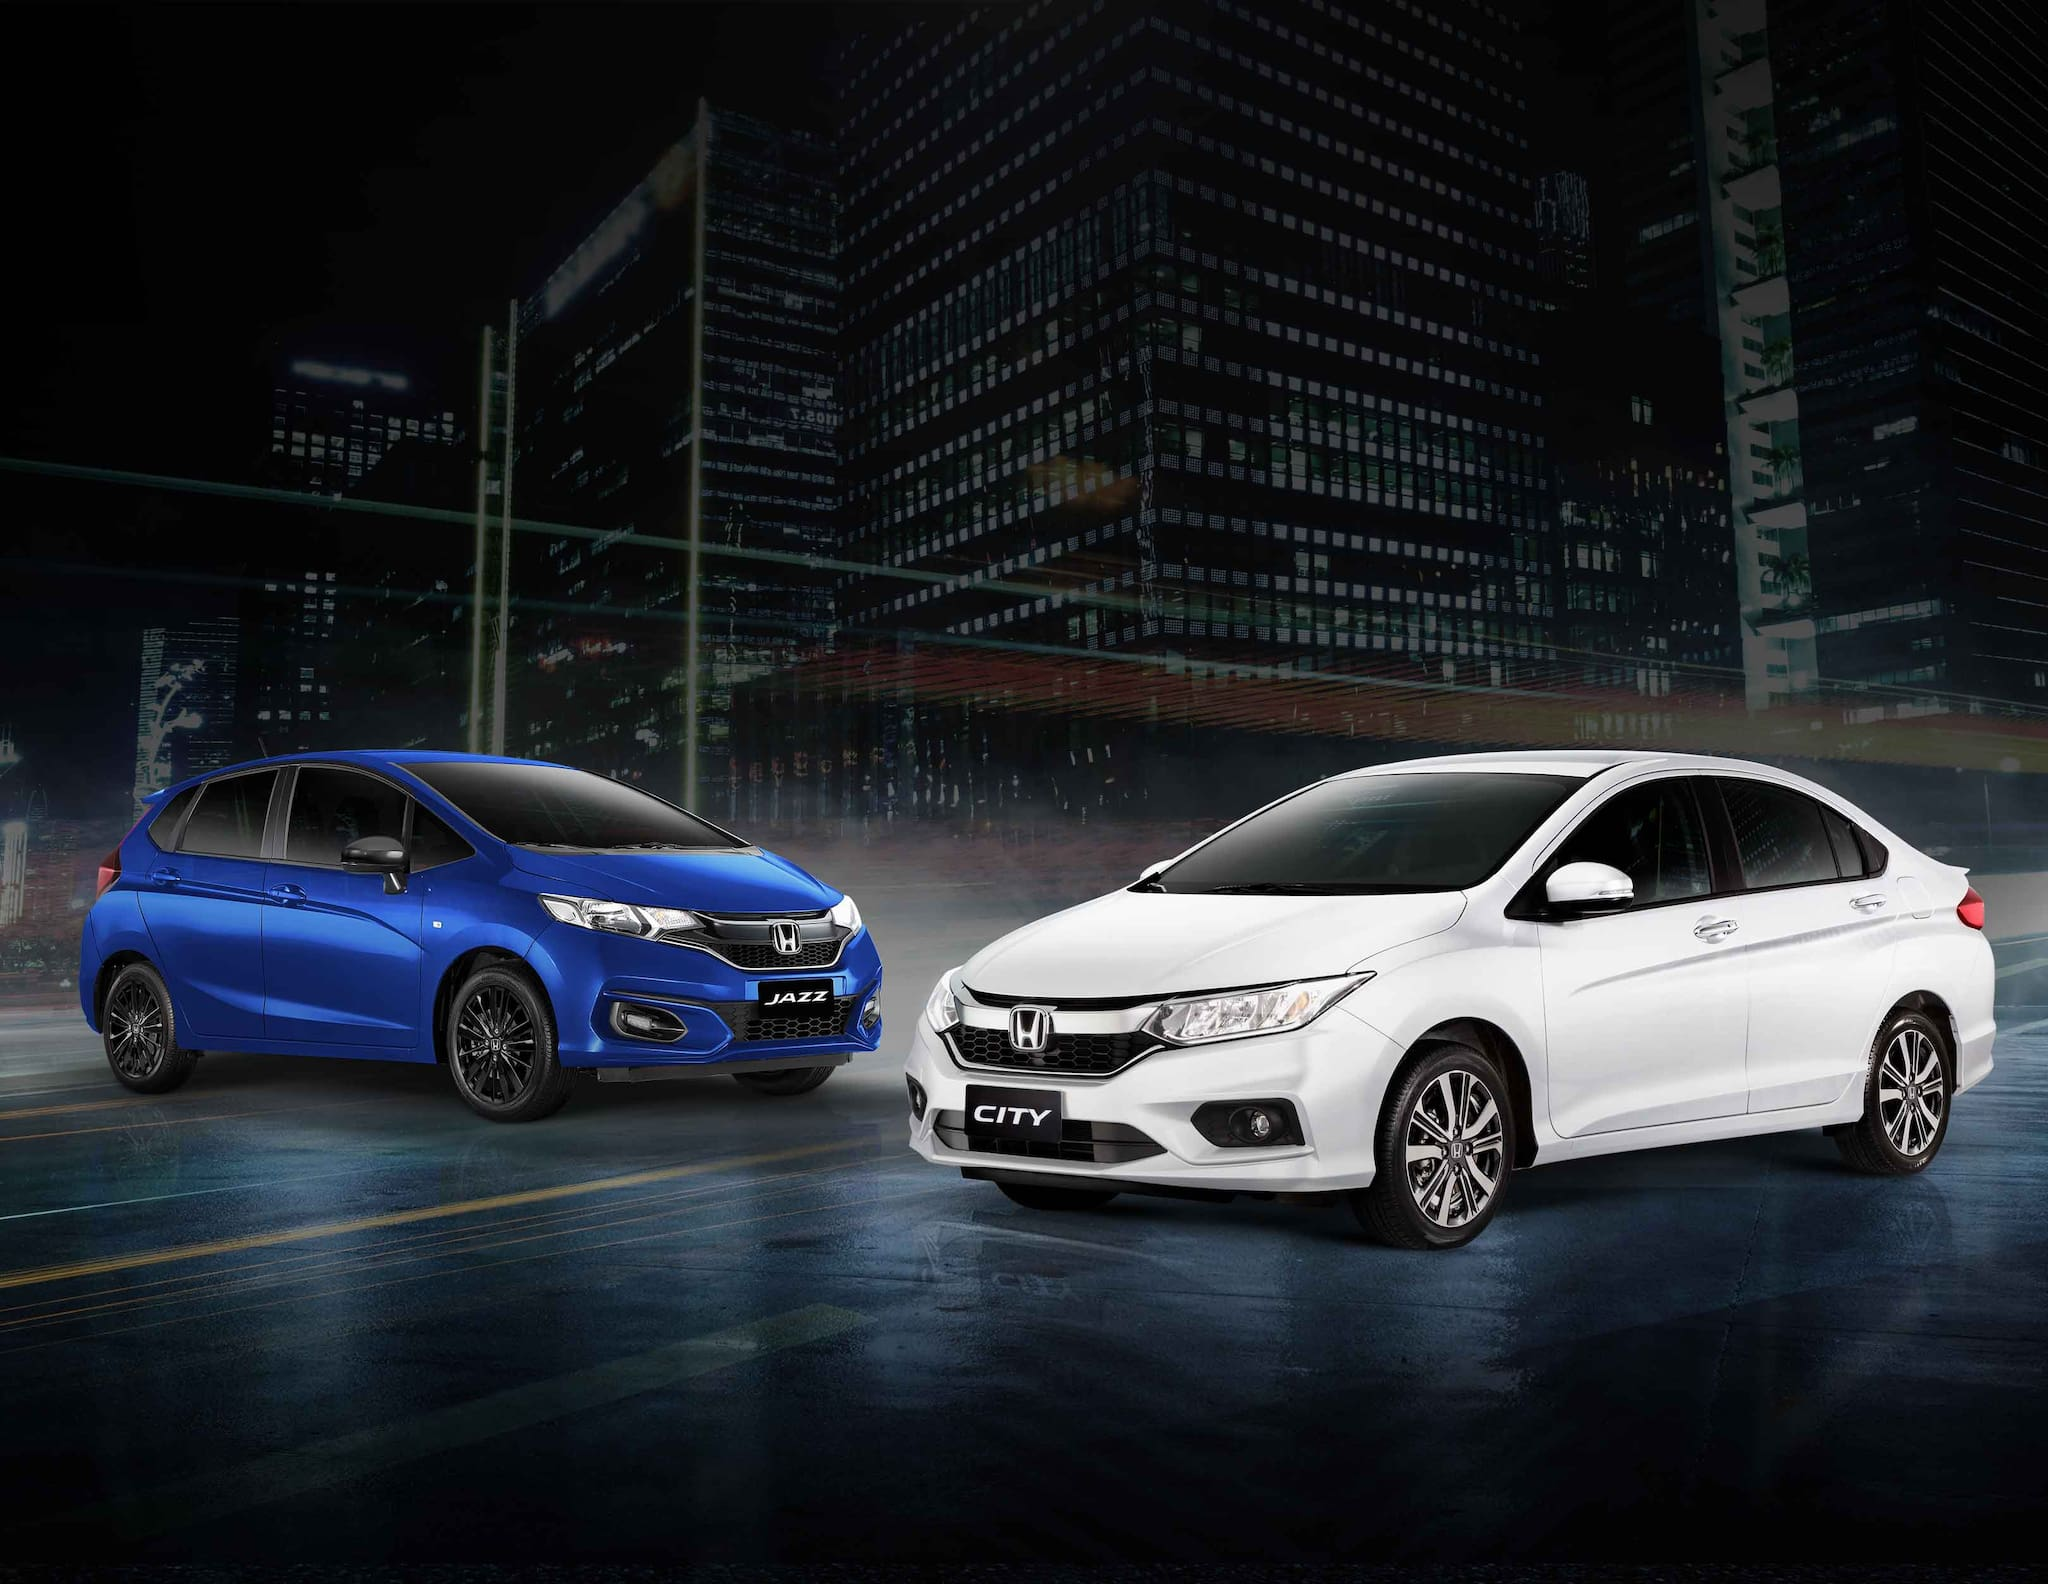 Honda City, Honda Jazz Get New Sporty Upgrades